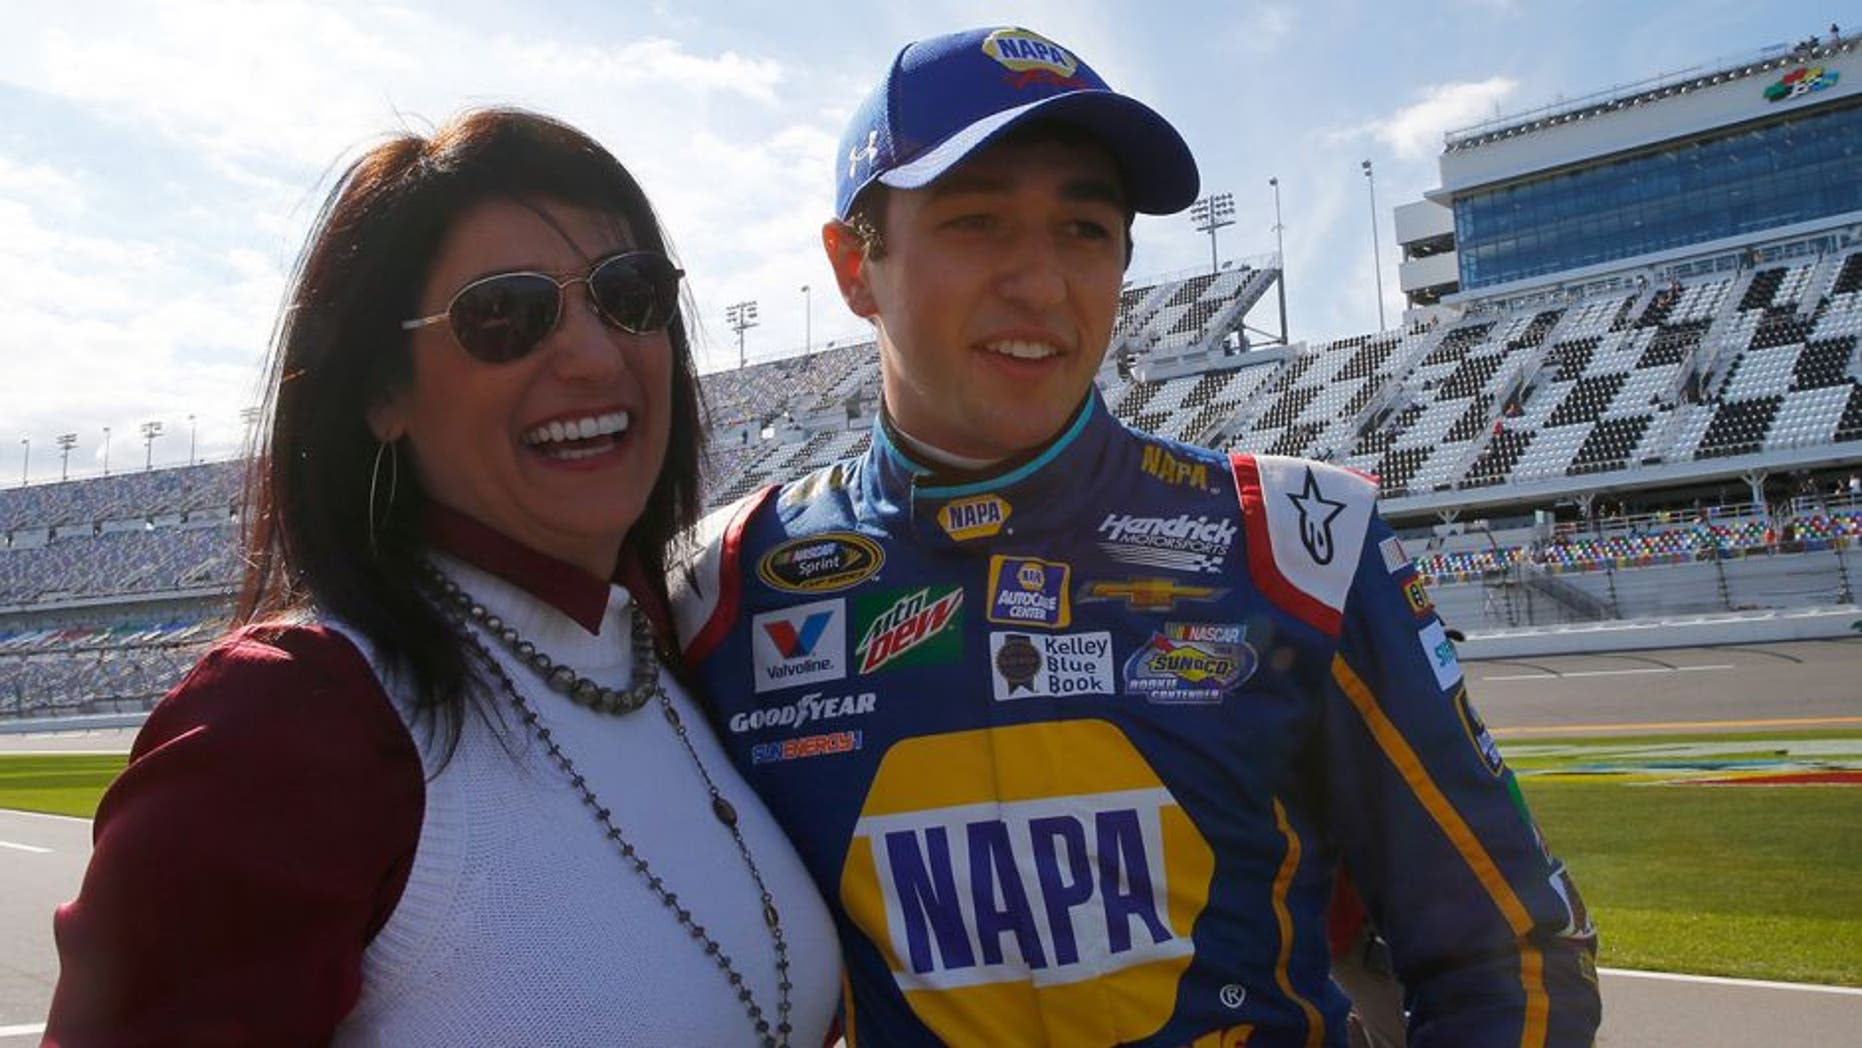 DAYTONA BEACH, FL - FEBRUARY 14: Chase Elliott, driver of the #24 NAPA Auto Parts Chevrolet, hugs his mother Cindy Elliott after winning the Pole Award and qualifying for the NASCAR Sprint Cup Series Daytona 500 at Daytona International Speedway on February 14, 2016 in Daytona Beach, Florida. (Photo by Jonathan Ferrey/NASCAR via Getty Images)